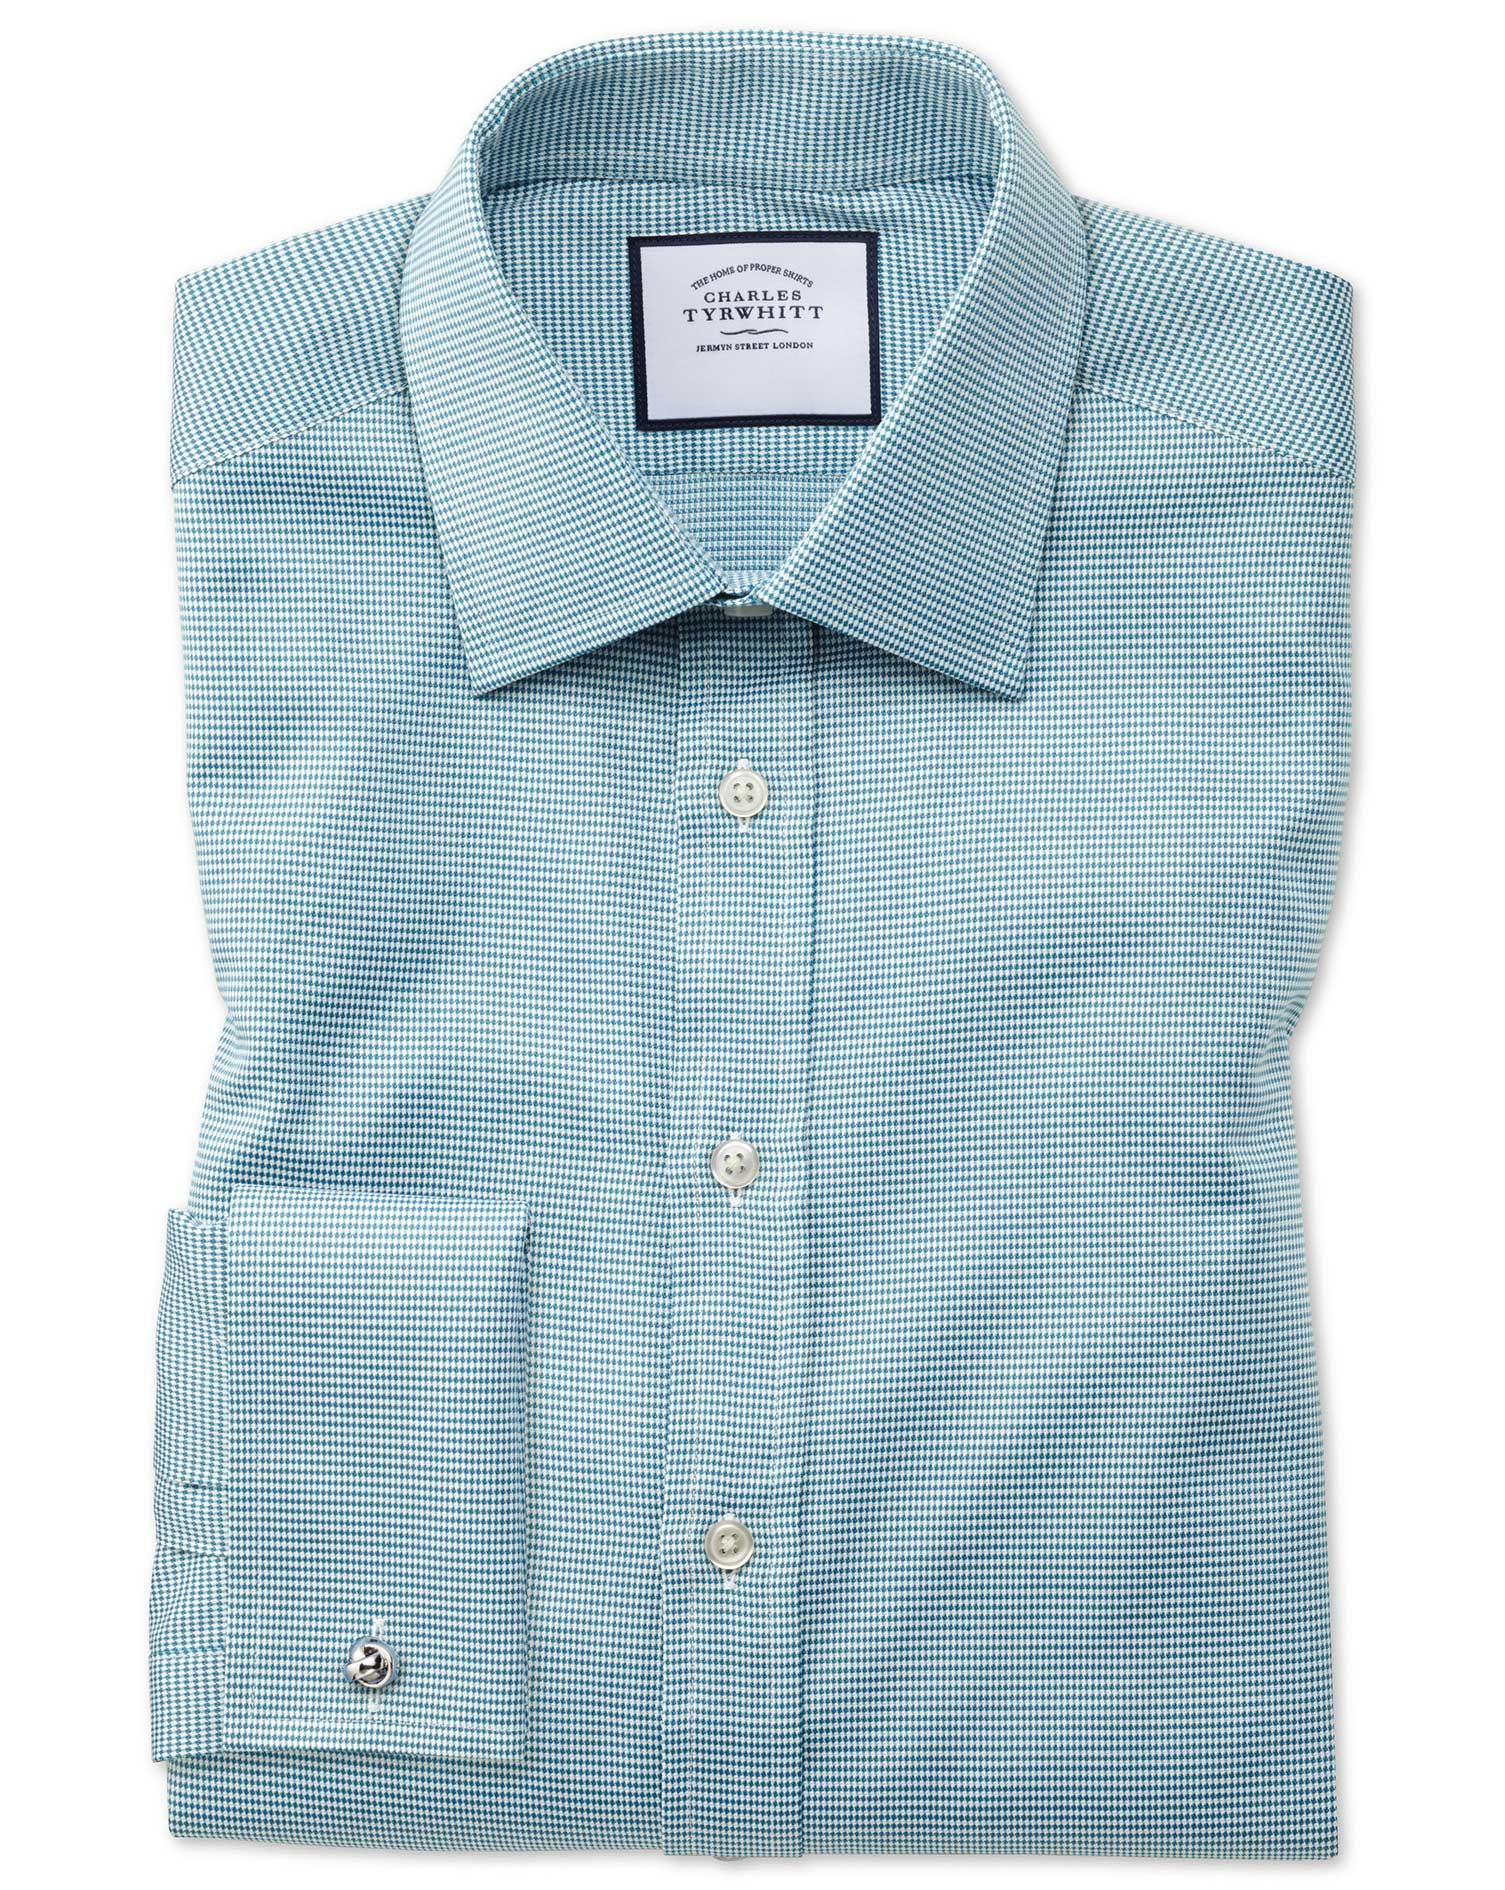 Classic Fit Teal Small Puppytooth Egyptian Cotton Formal Shirt Single Cuff Size 16.5/36 by Charles T